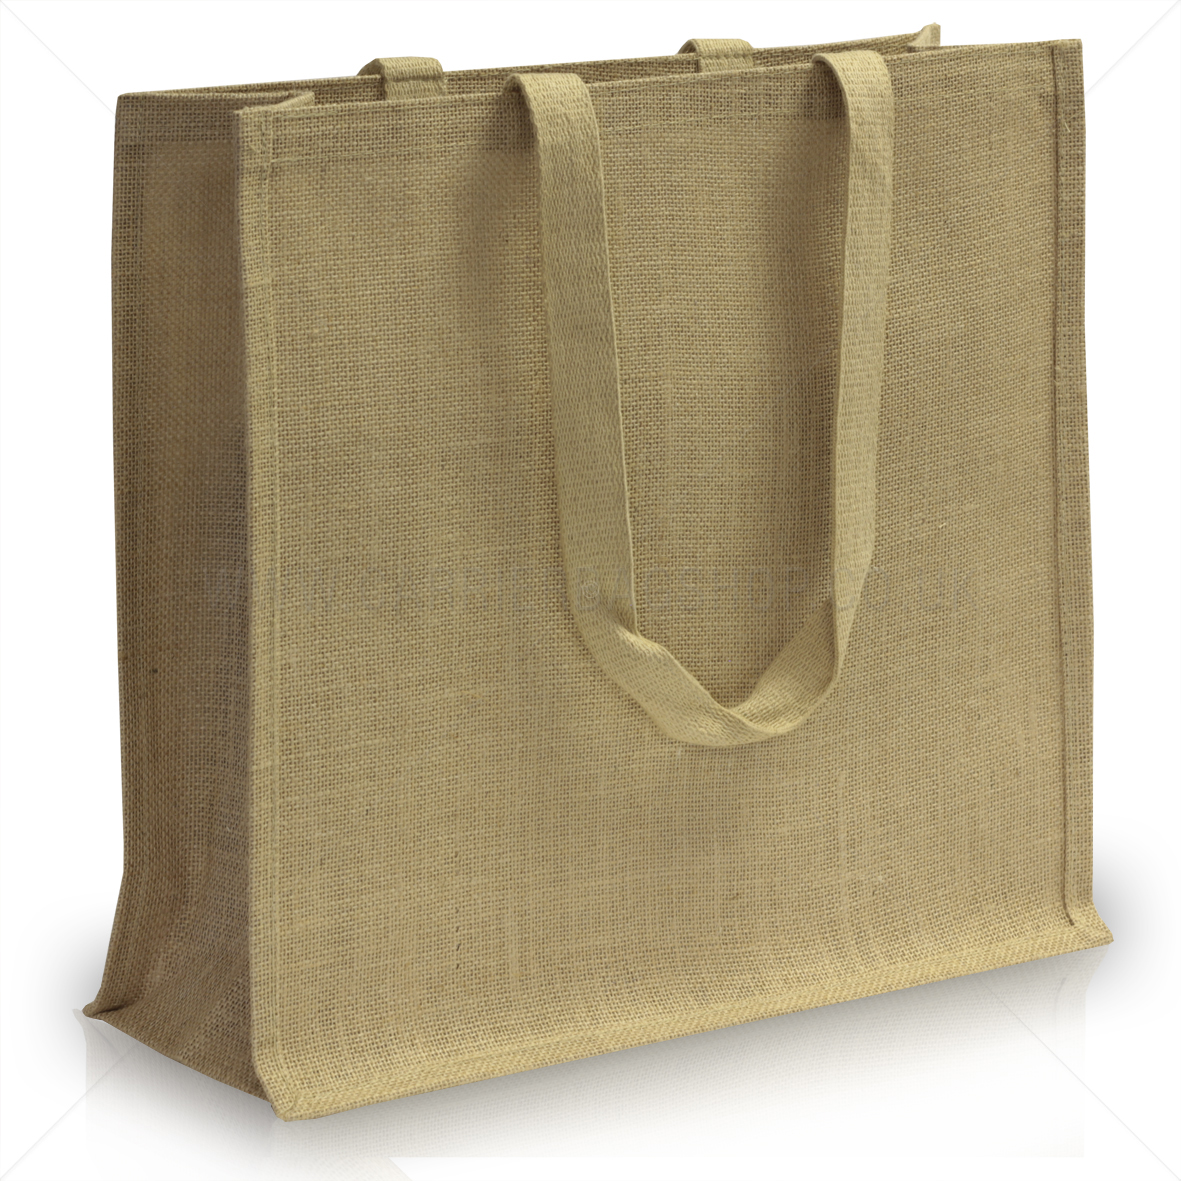 Natural Jute Bags with Long Cotton Tape Handles from